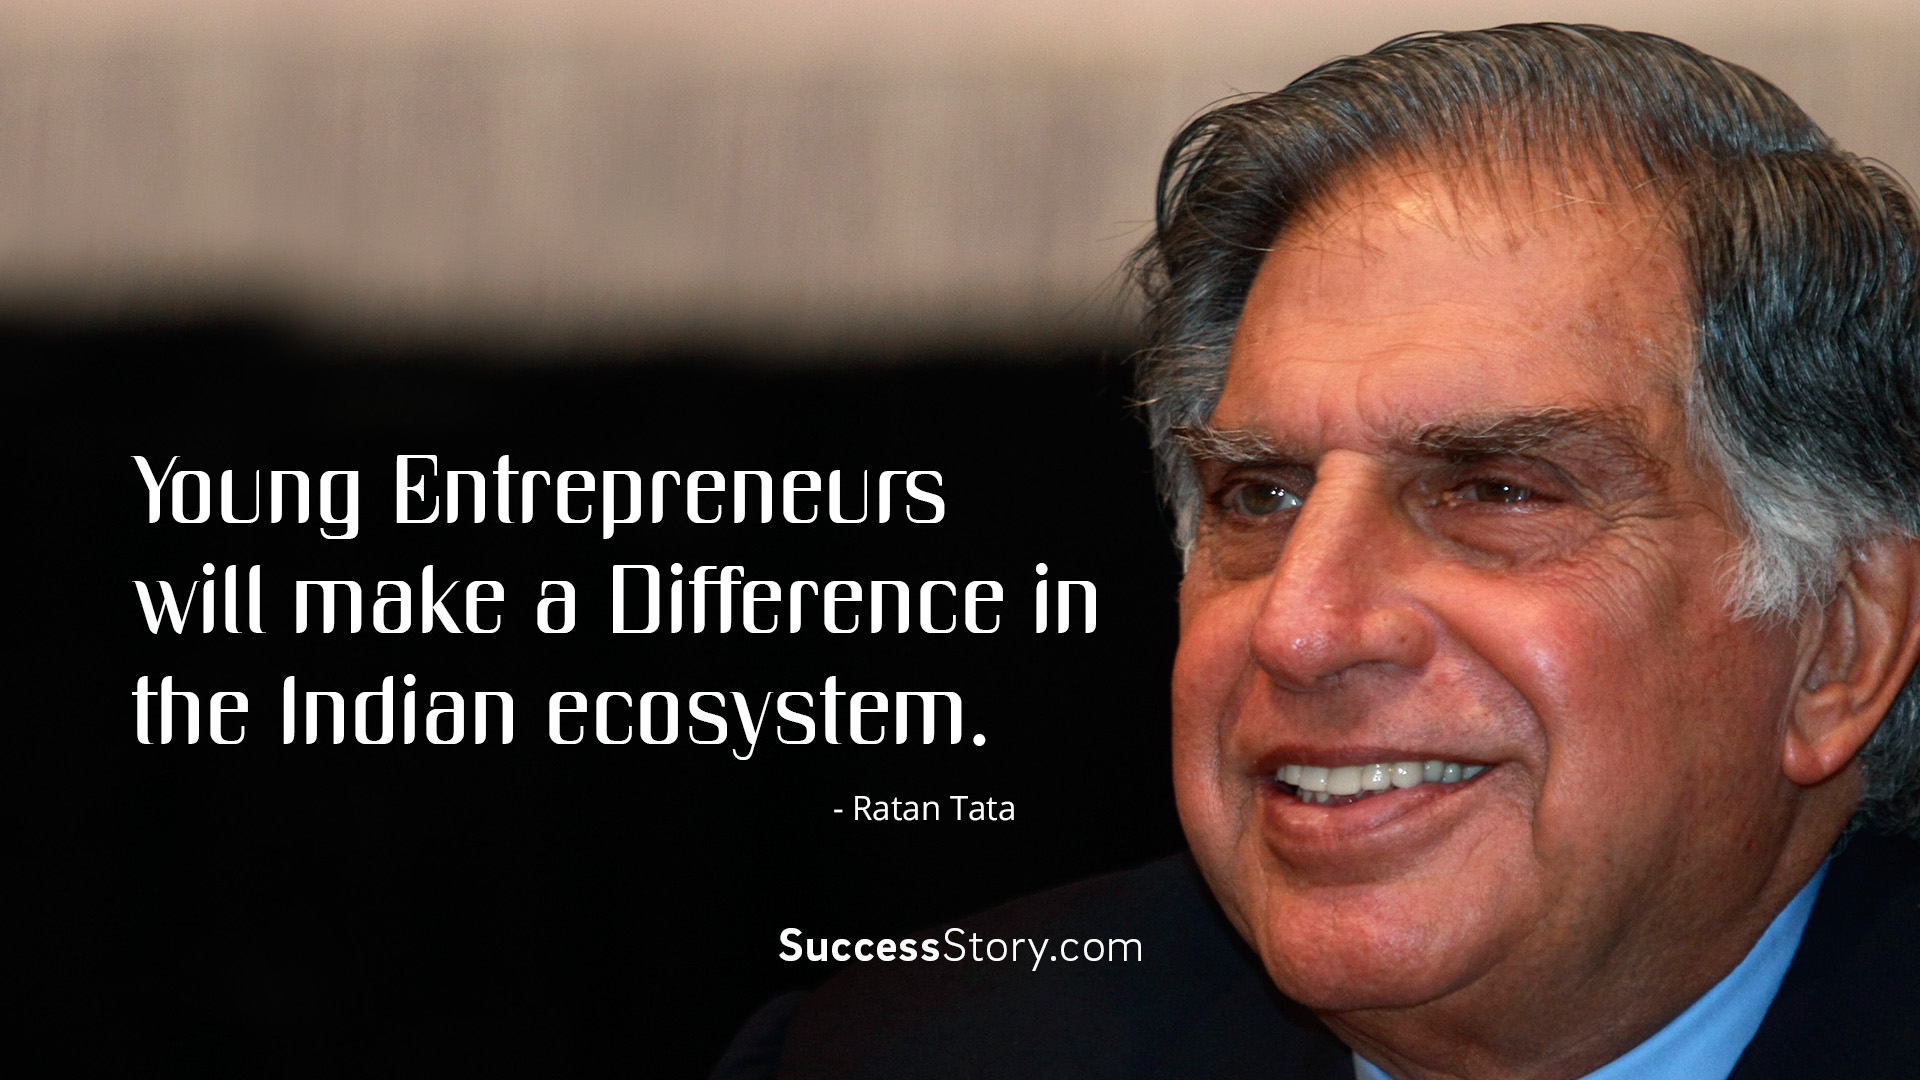 Young entrepreneurs will make a difference in the Indian ecosystem